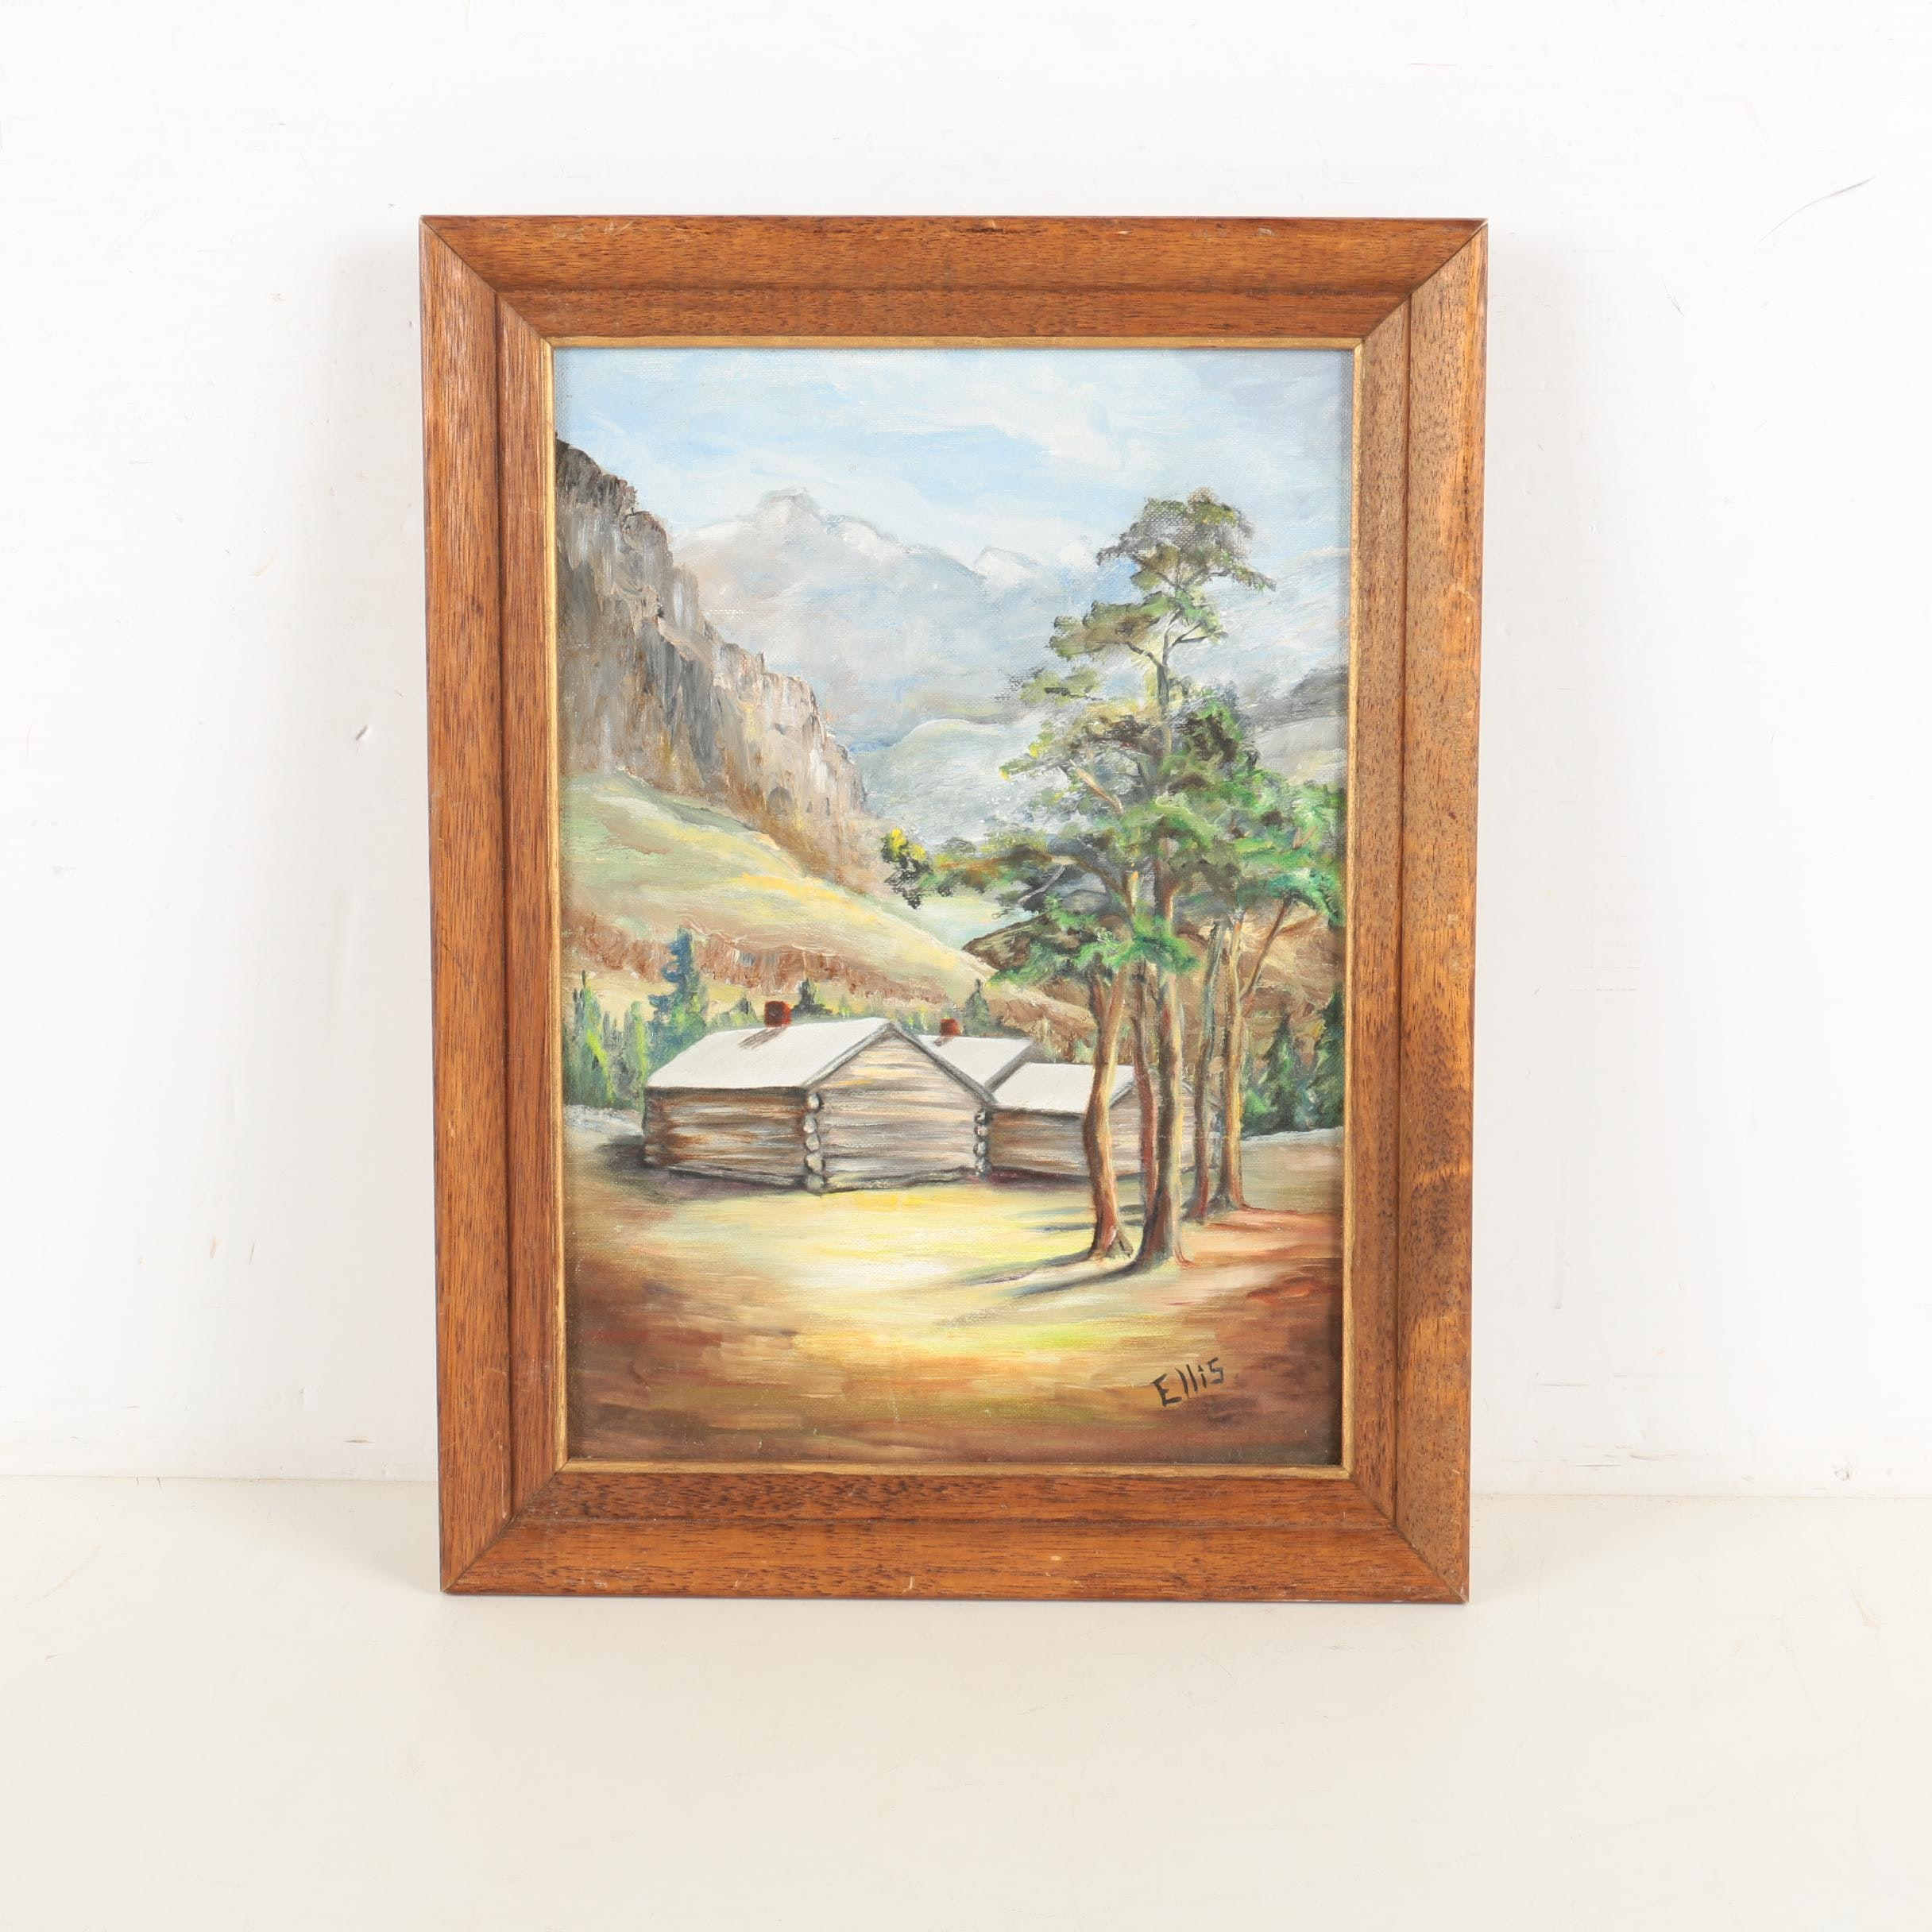 Ellis Oil Painting of a Mountain Cabins